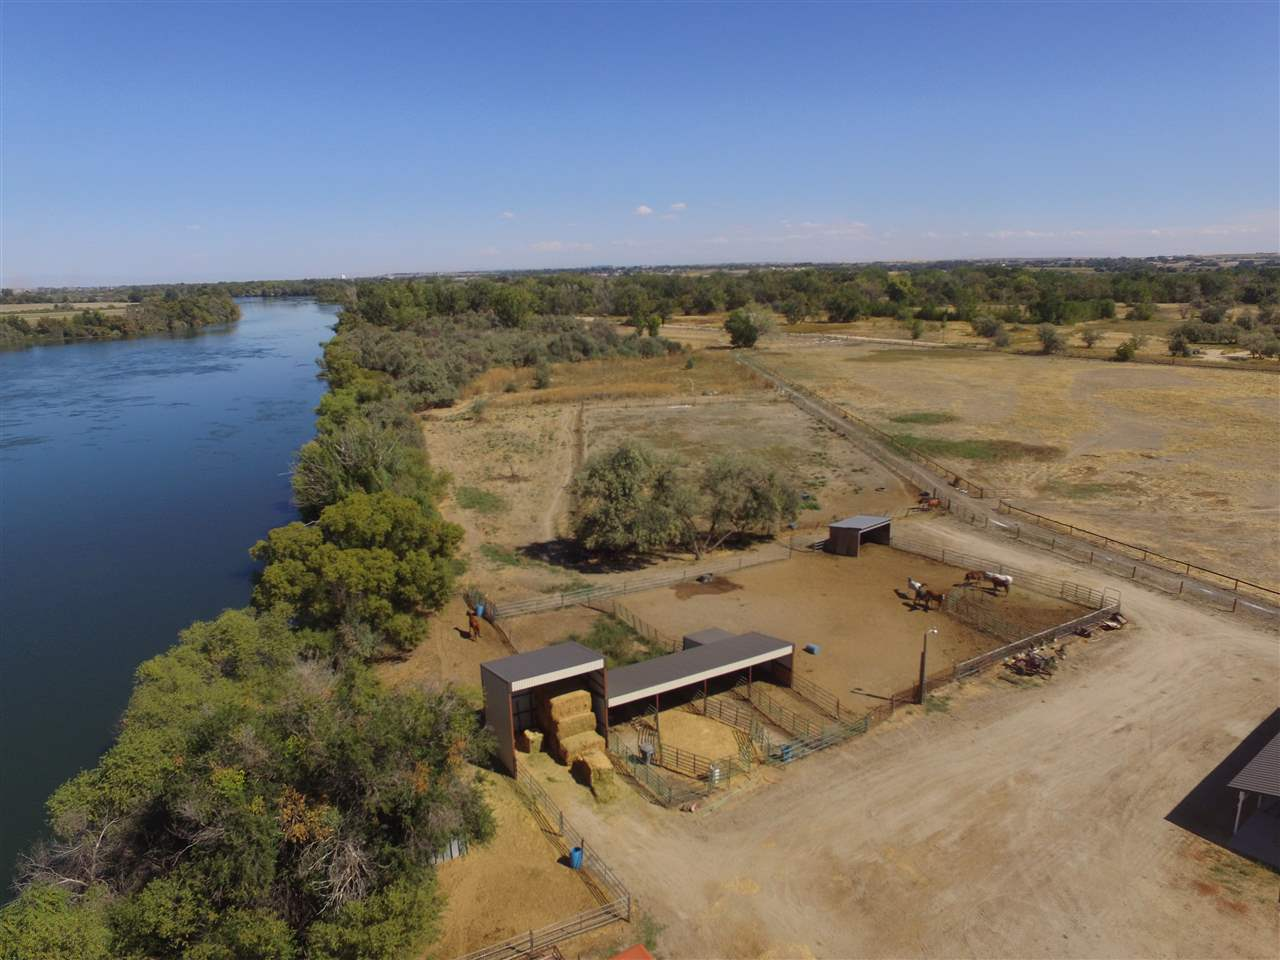 Farm / Ranch for Sale at 31776 Scott Pit Rd Parma, Idaho 83660